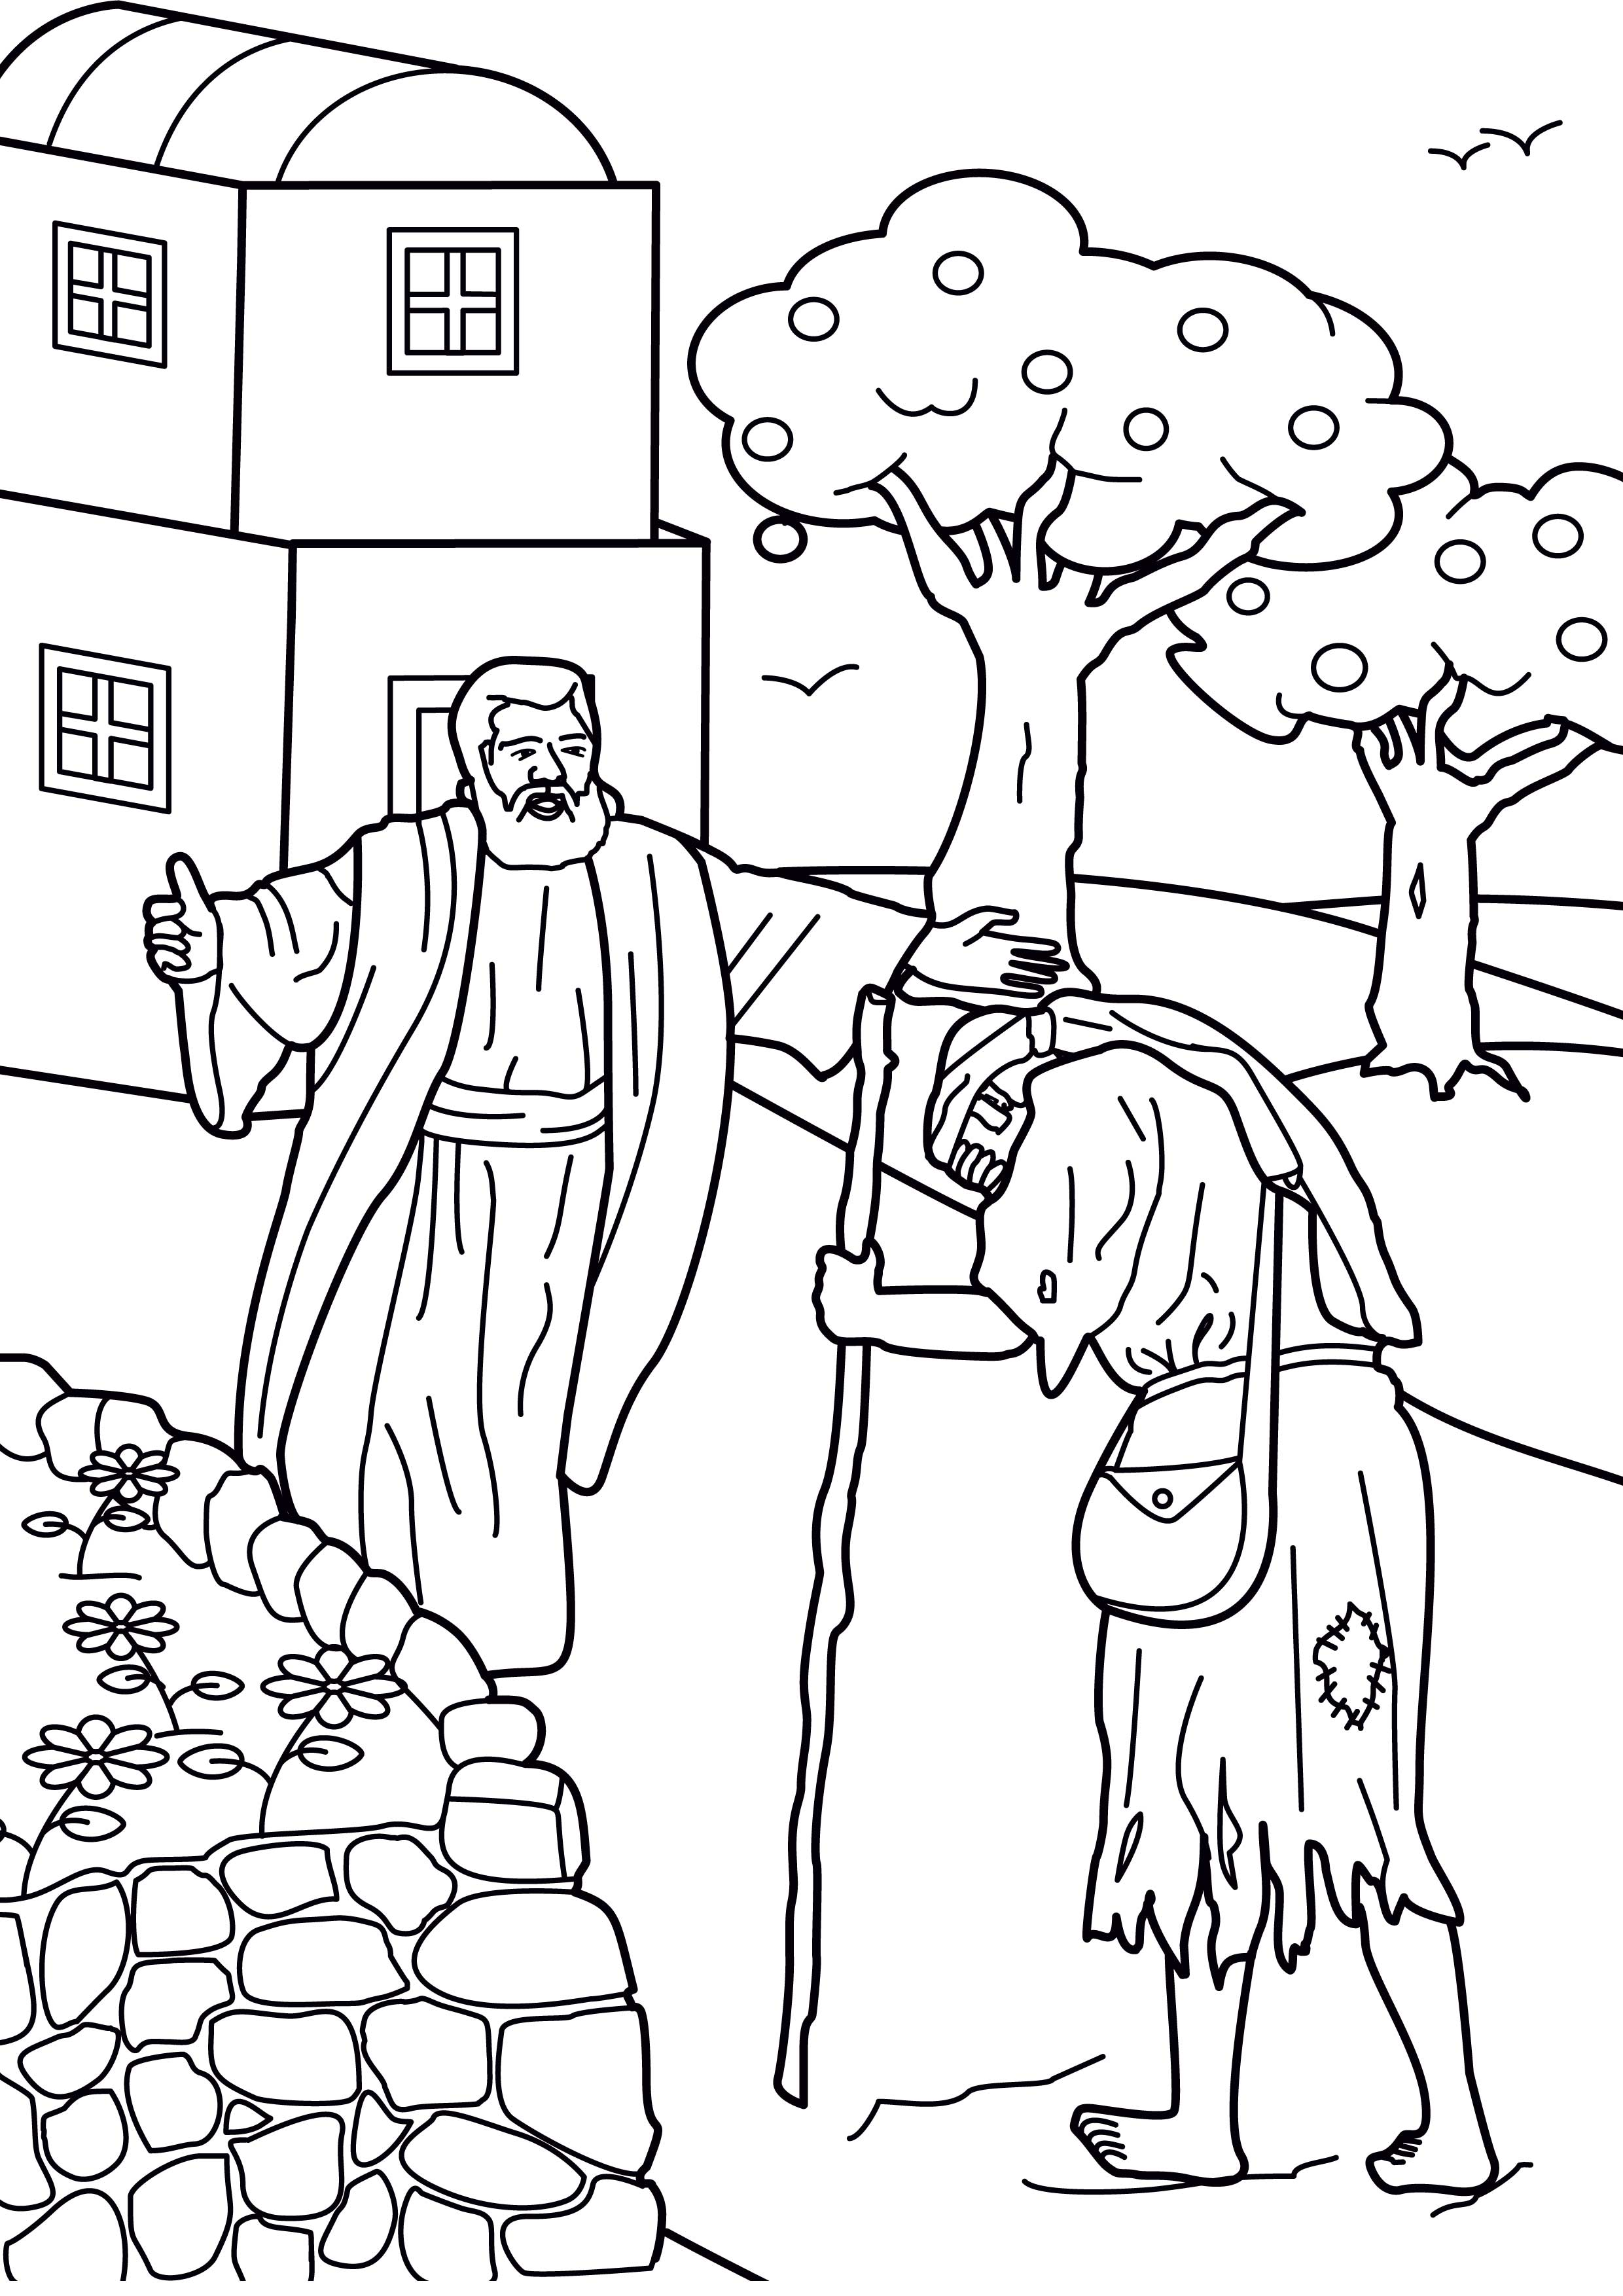 Prodigal son coloring pages for kids - Prodigal Son Coloring Pages View Full Size